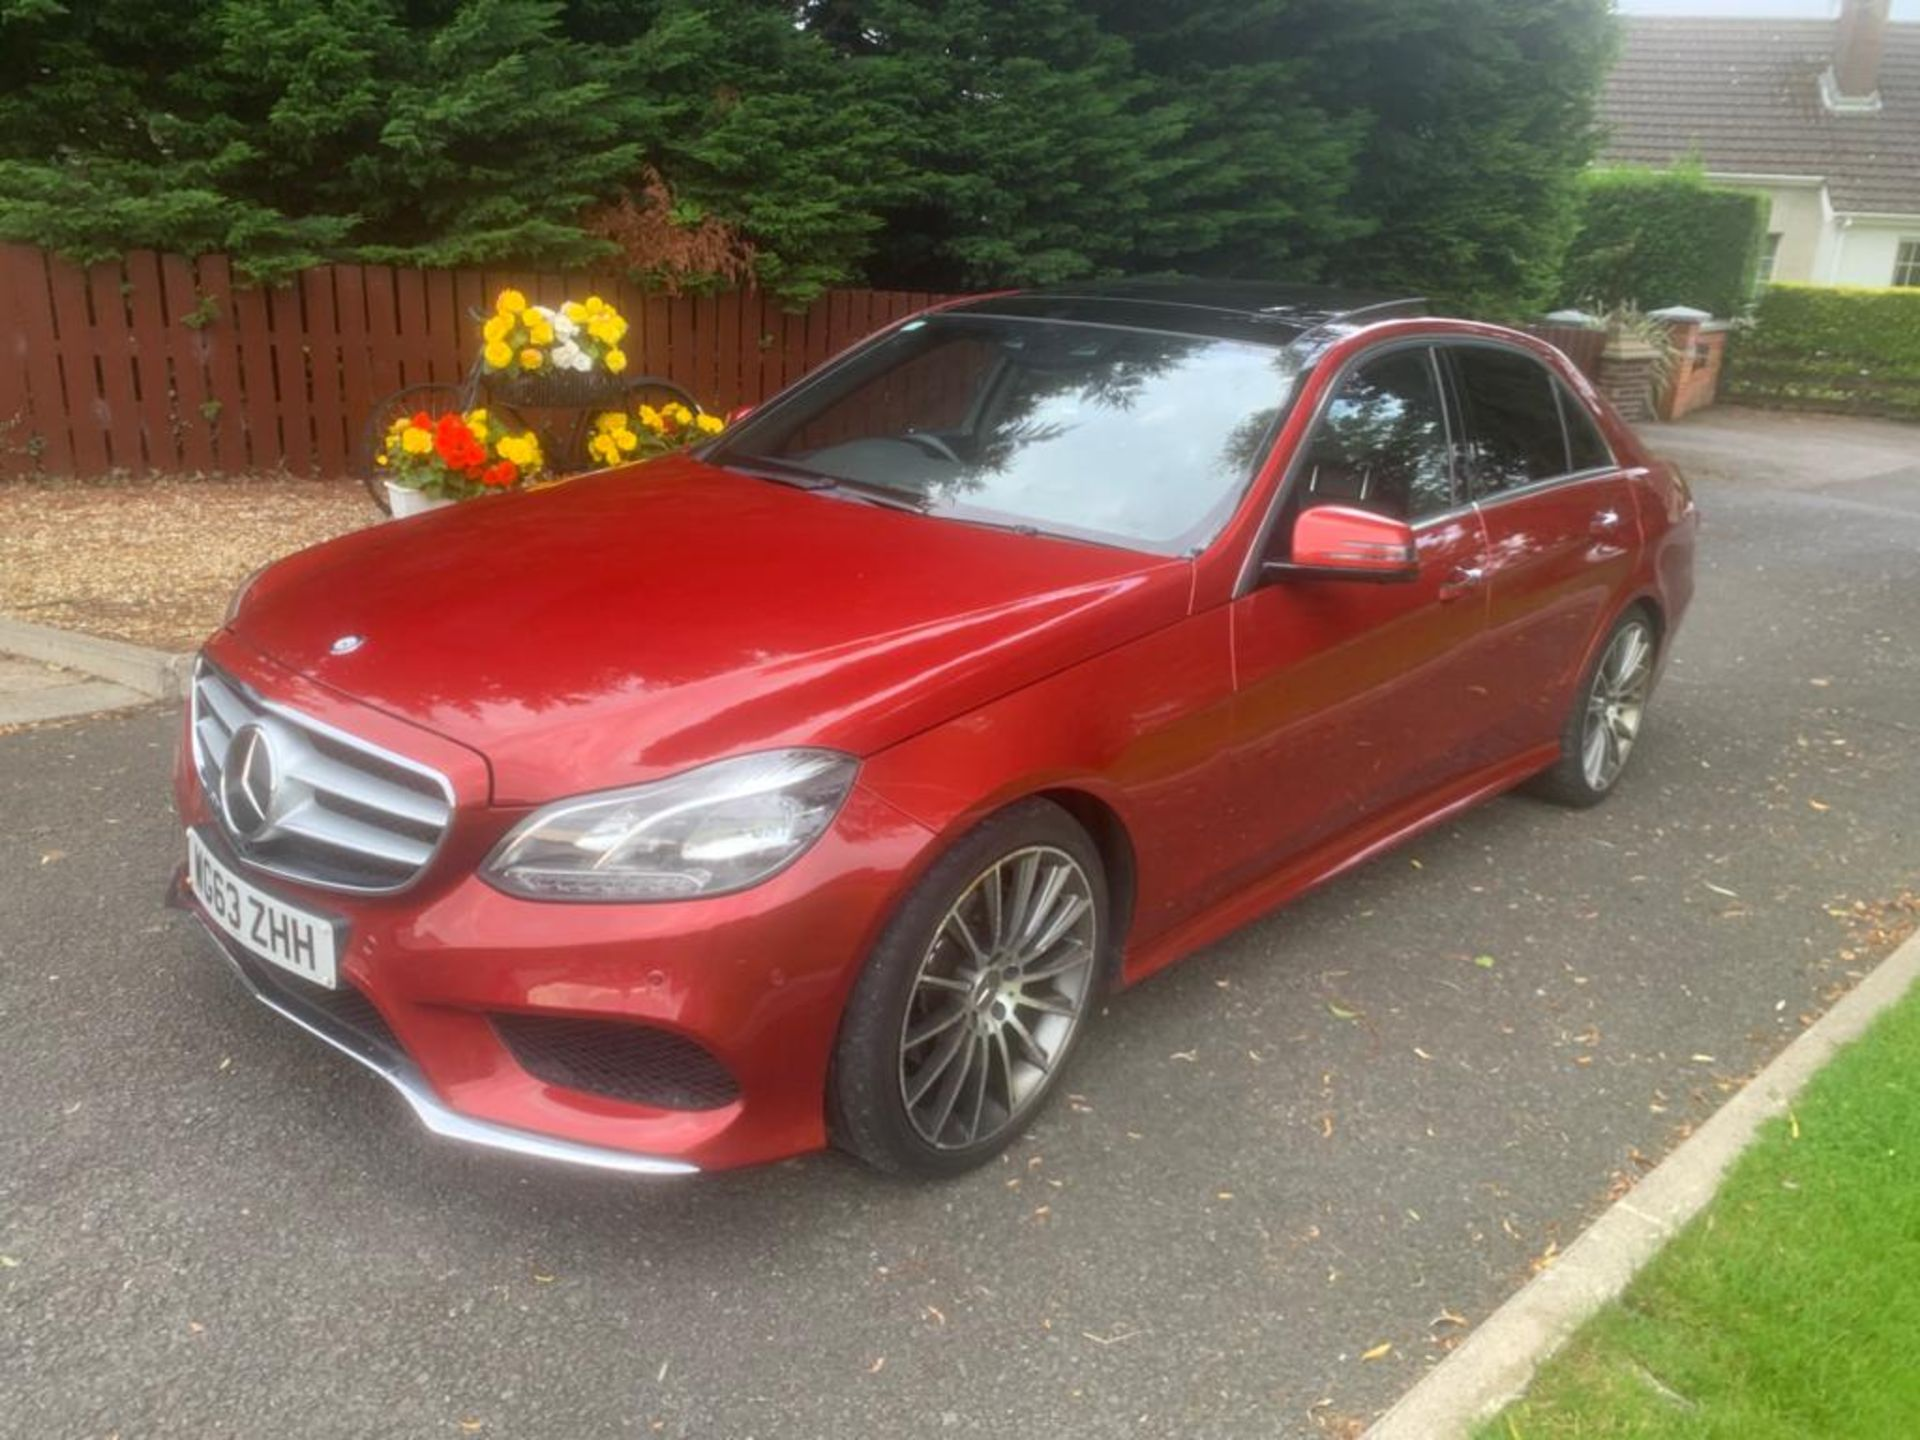 2014/63 REG MERCEDES-BENZ E300 AMG SPORT BLUETEC HYBRID 2.2 ELECTRIC DIESEL RED 4 DOOR SALOON - Image 6 of 15